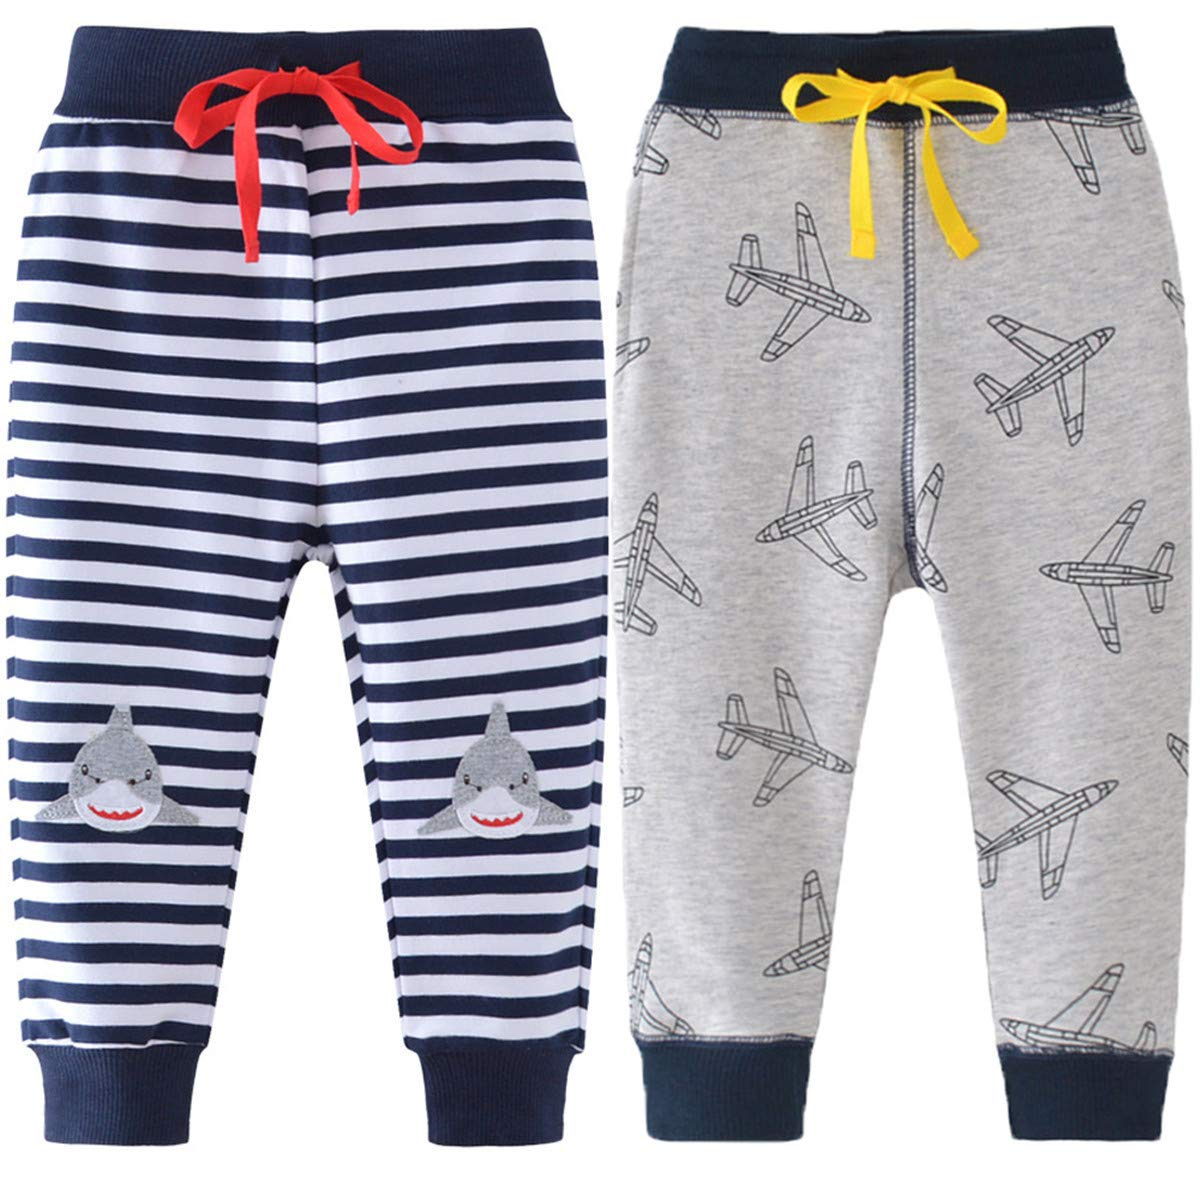 REWANGOING 2 Pack of Little Boys Cartoon Print Drawstring Elastic Sweatpants Sport Jogger 4T